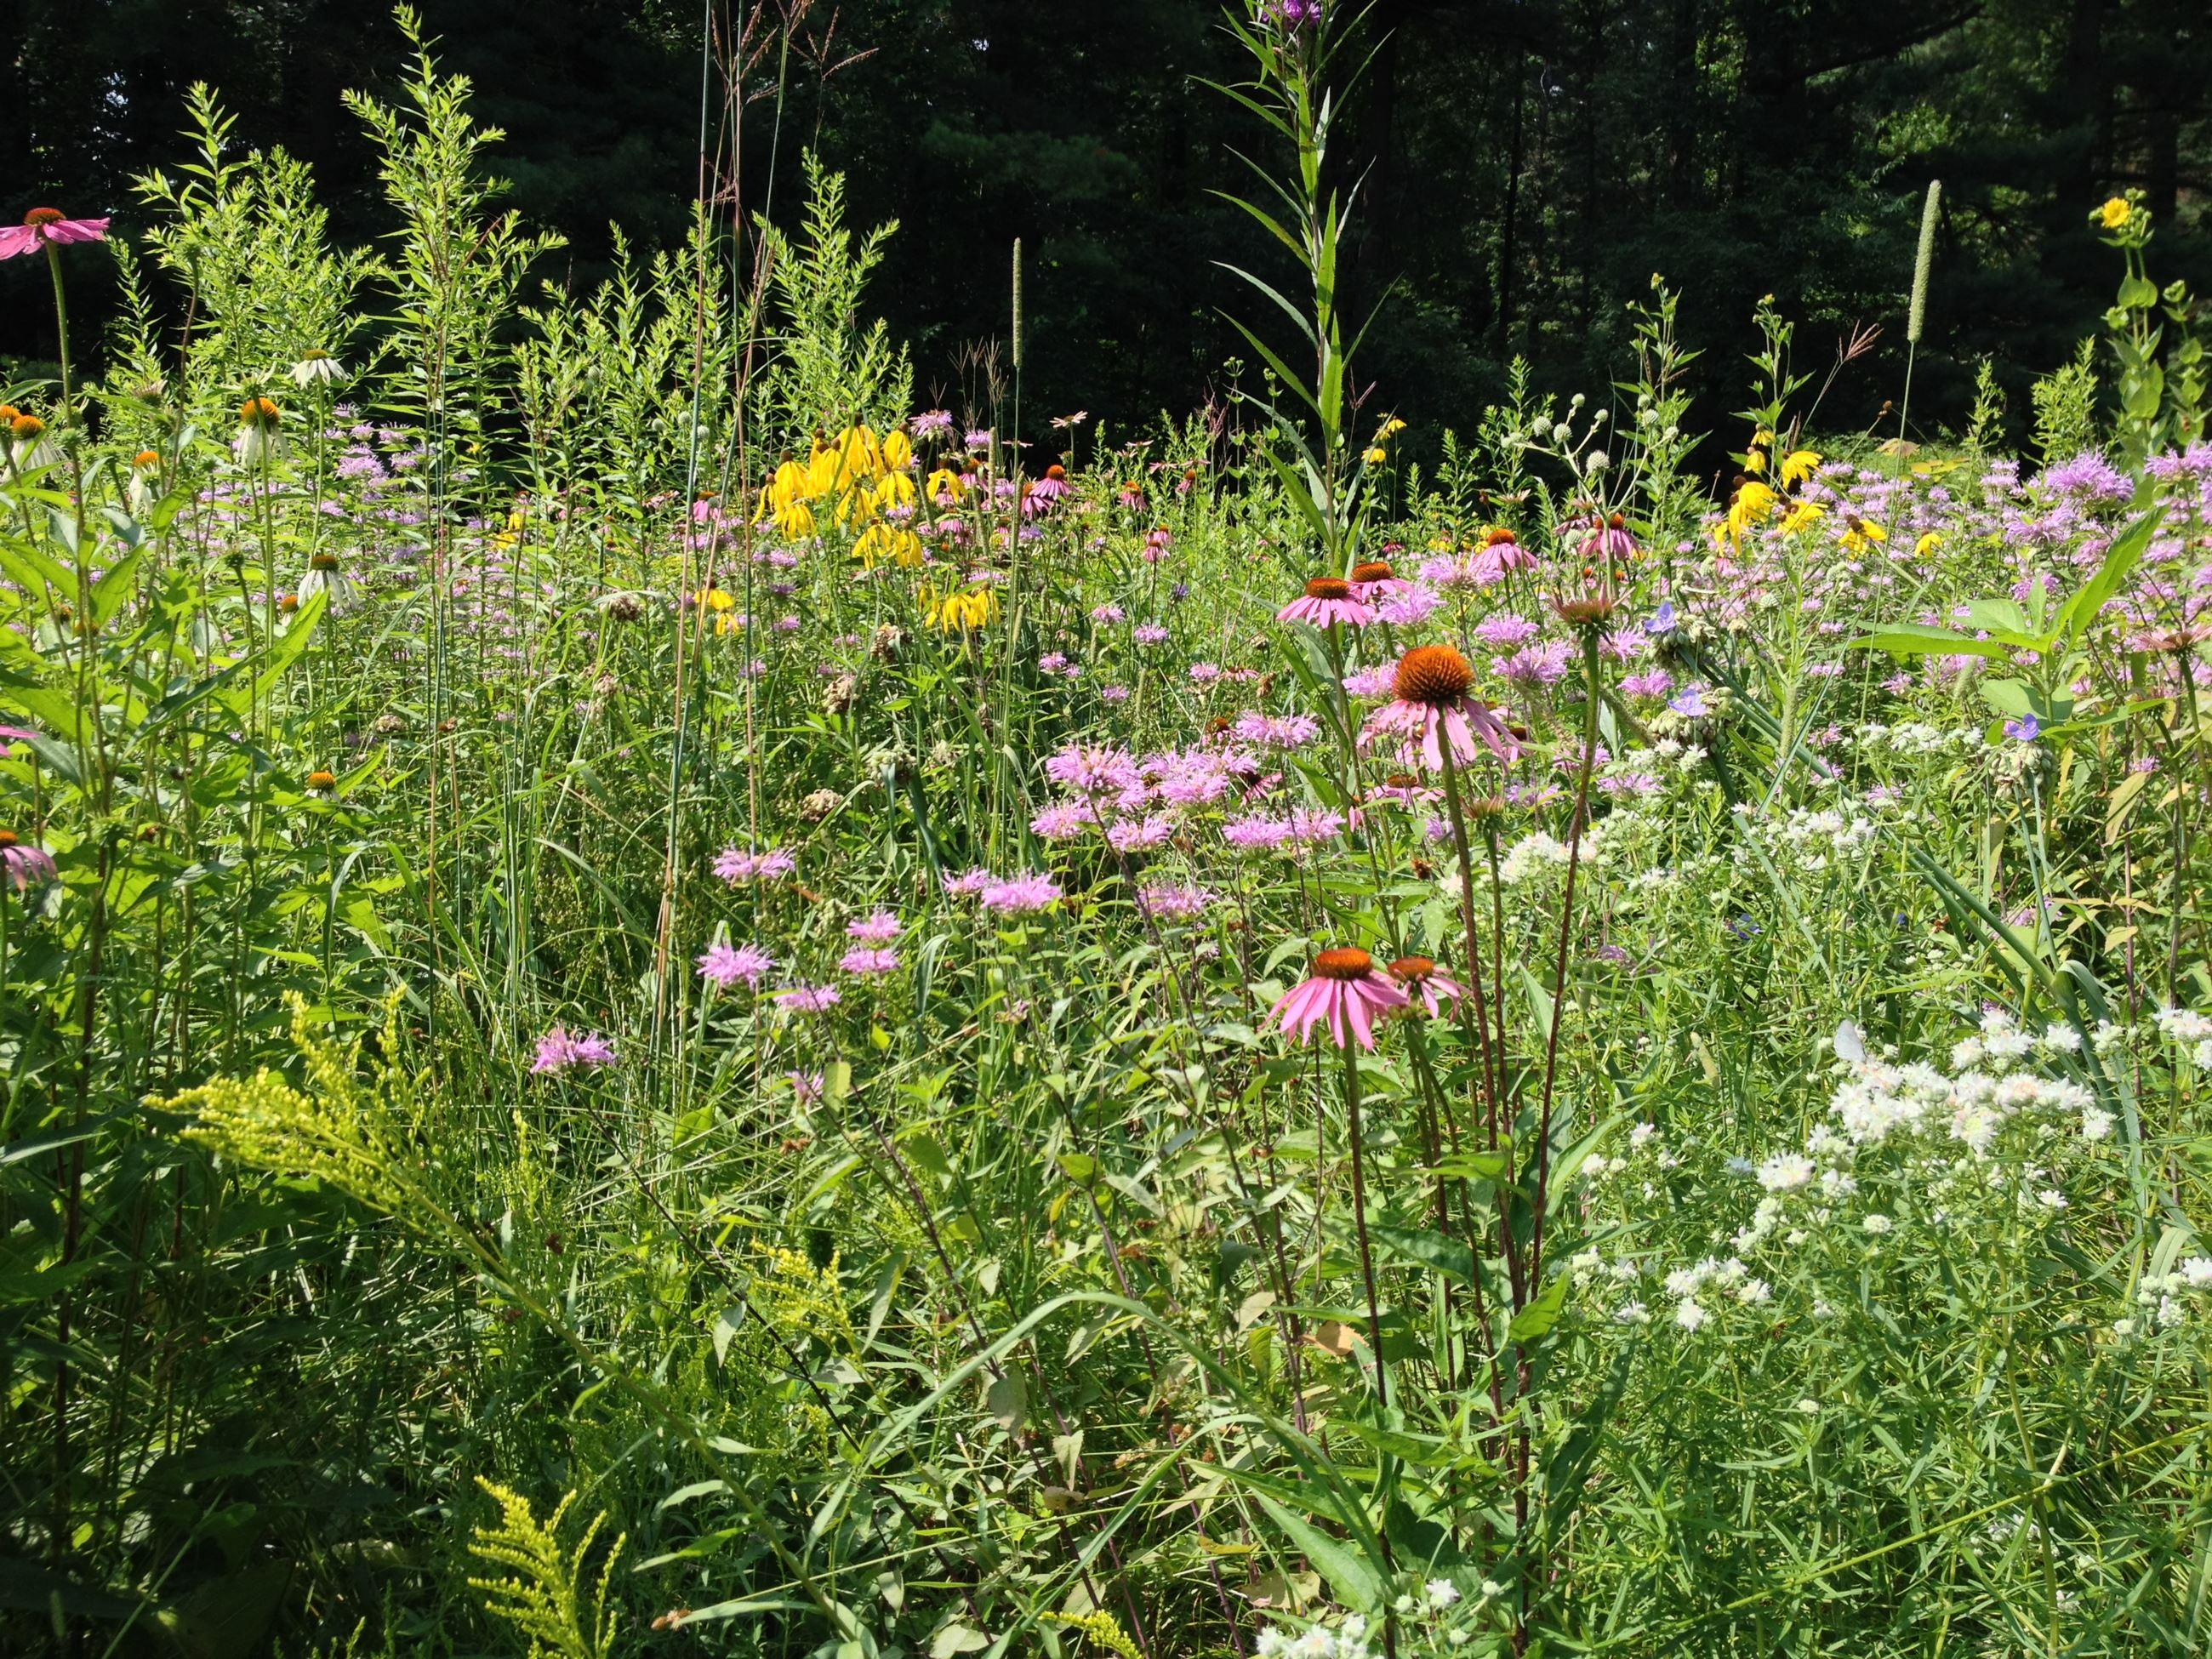 Bendix Woods prairie in bloom